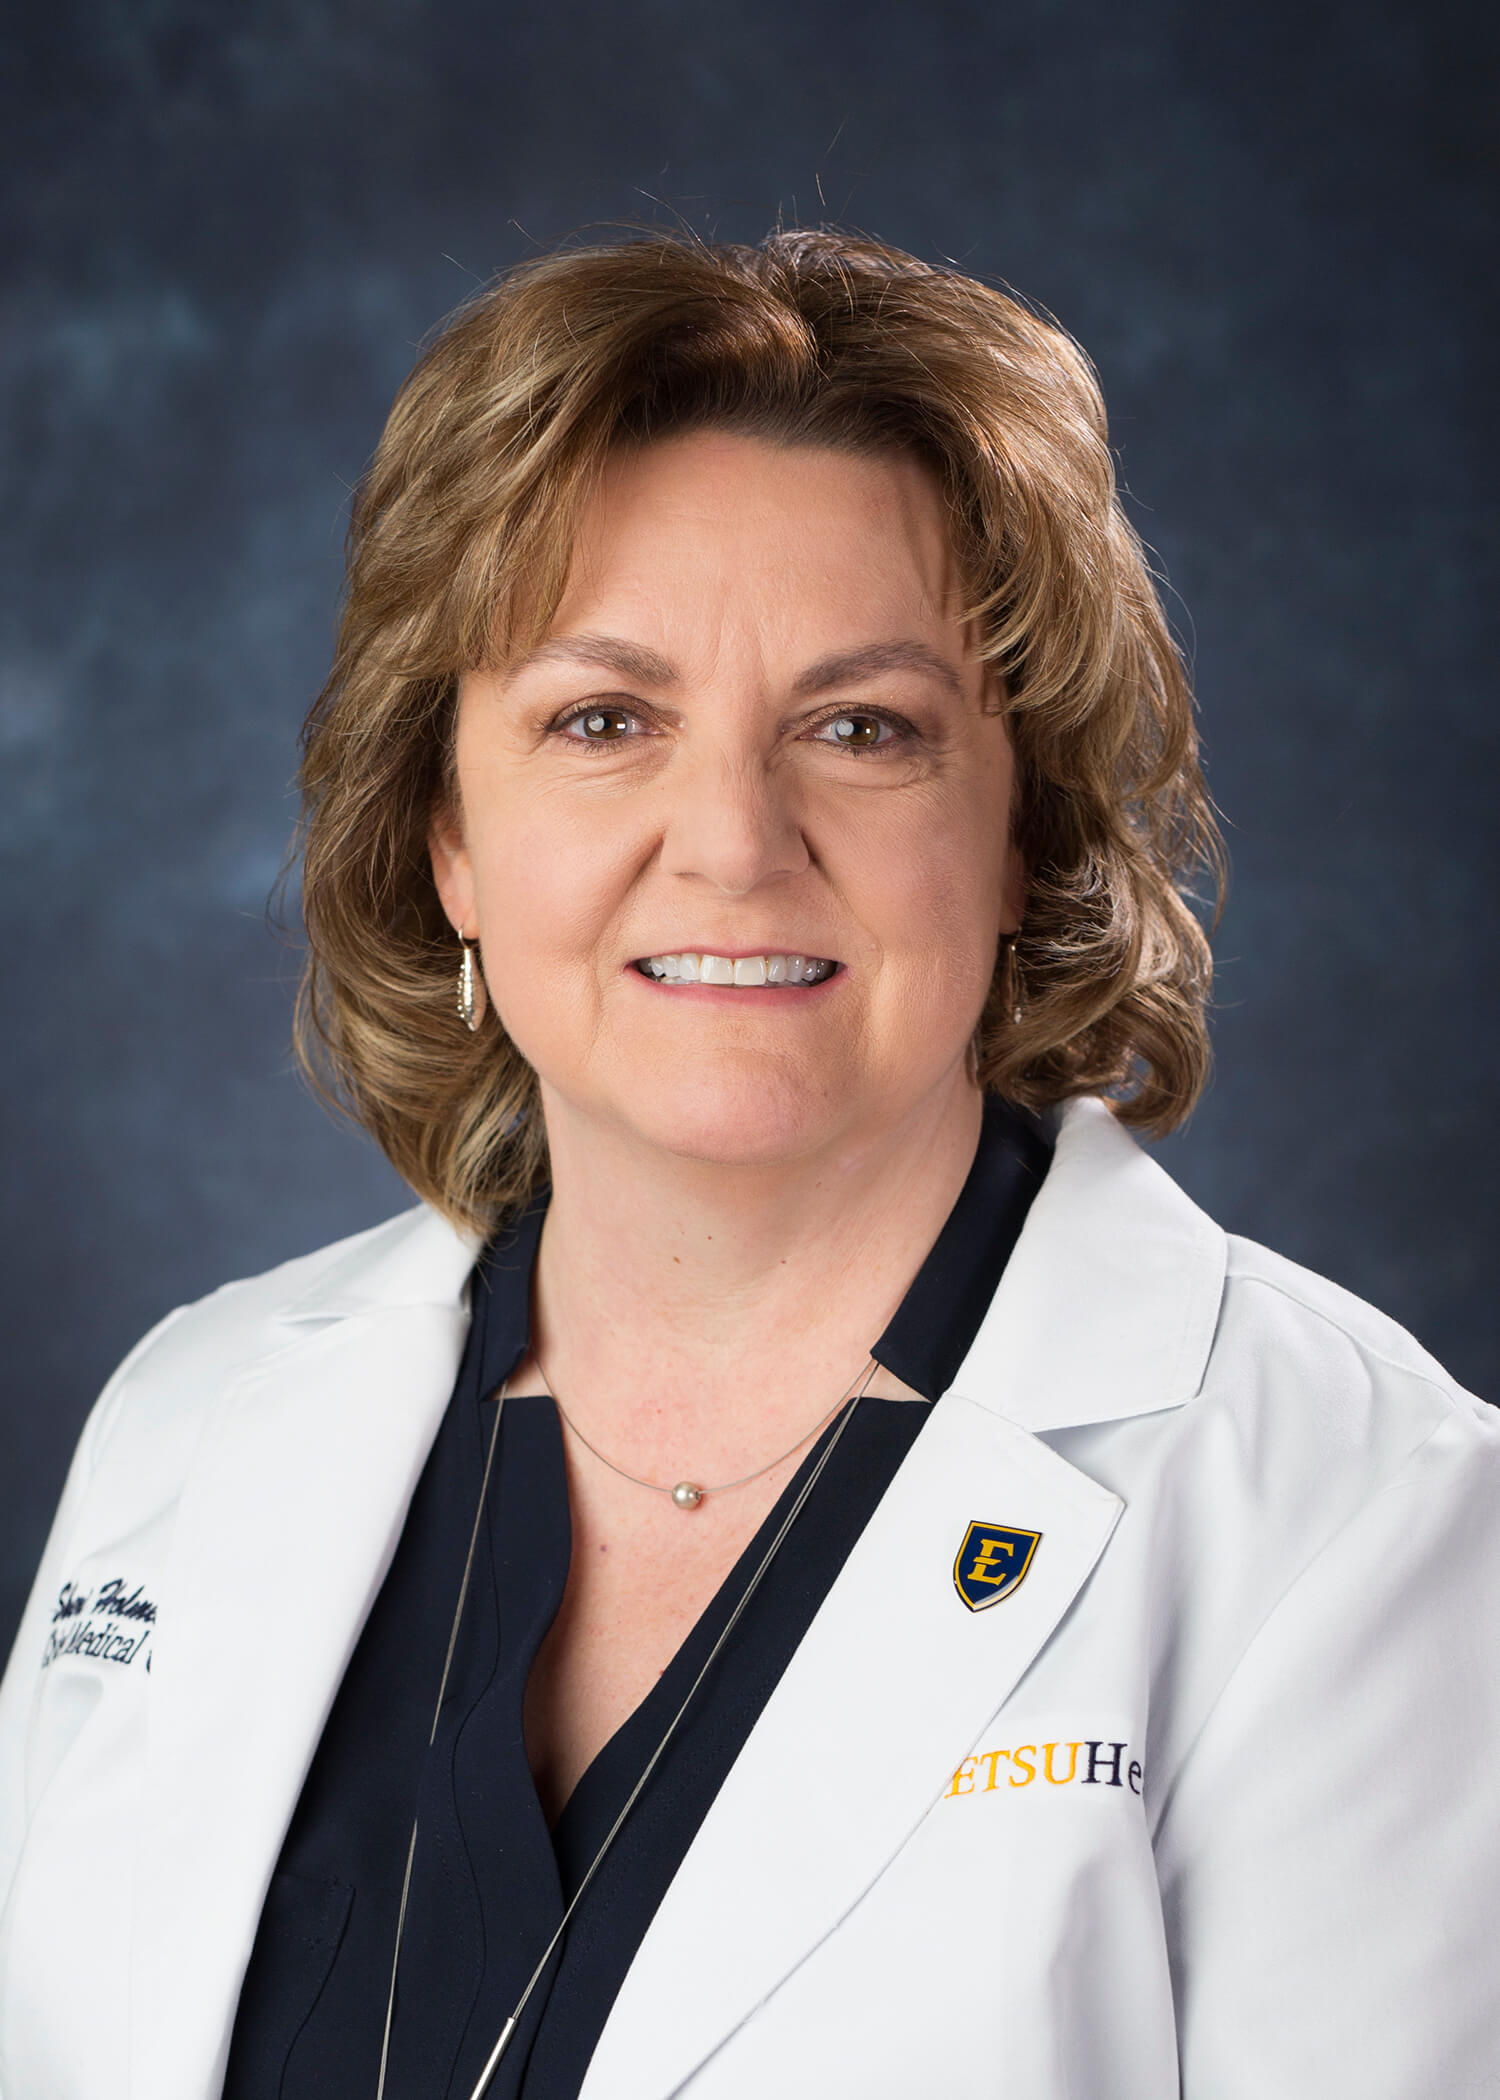 Photo of Sheri Holmes, M.D.